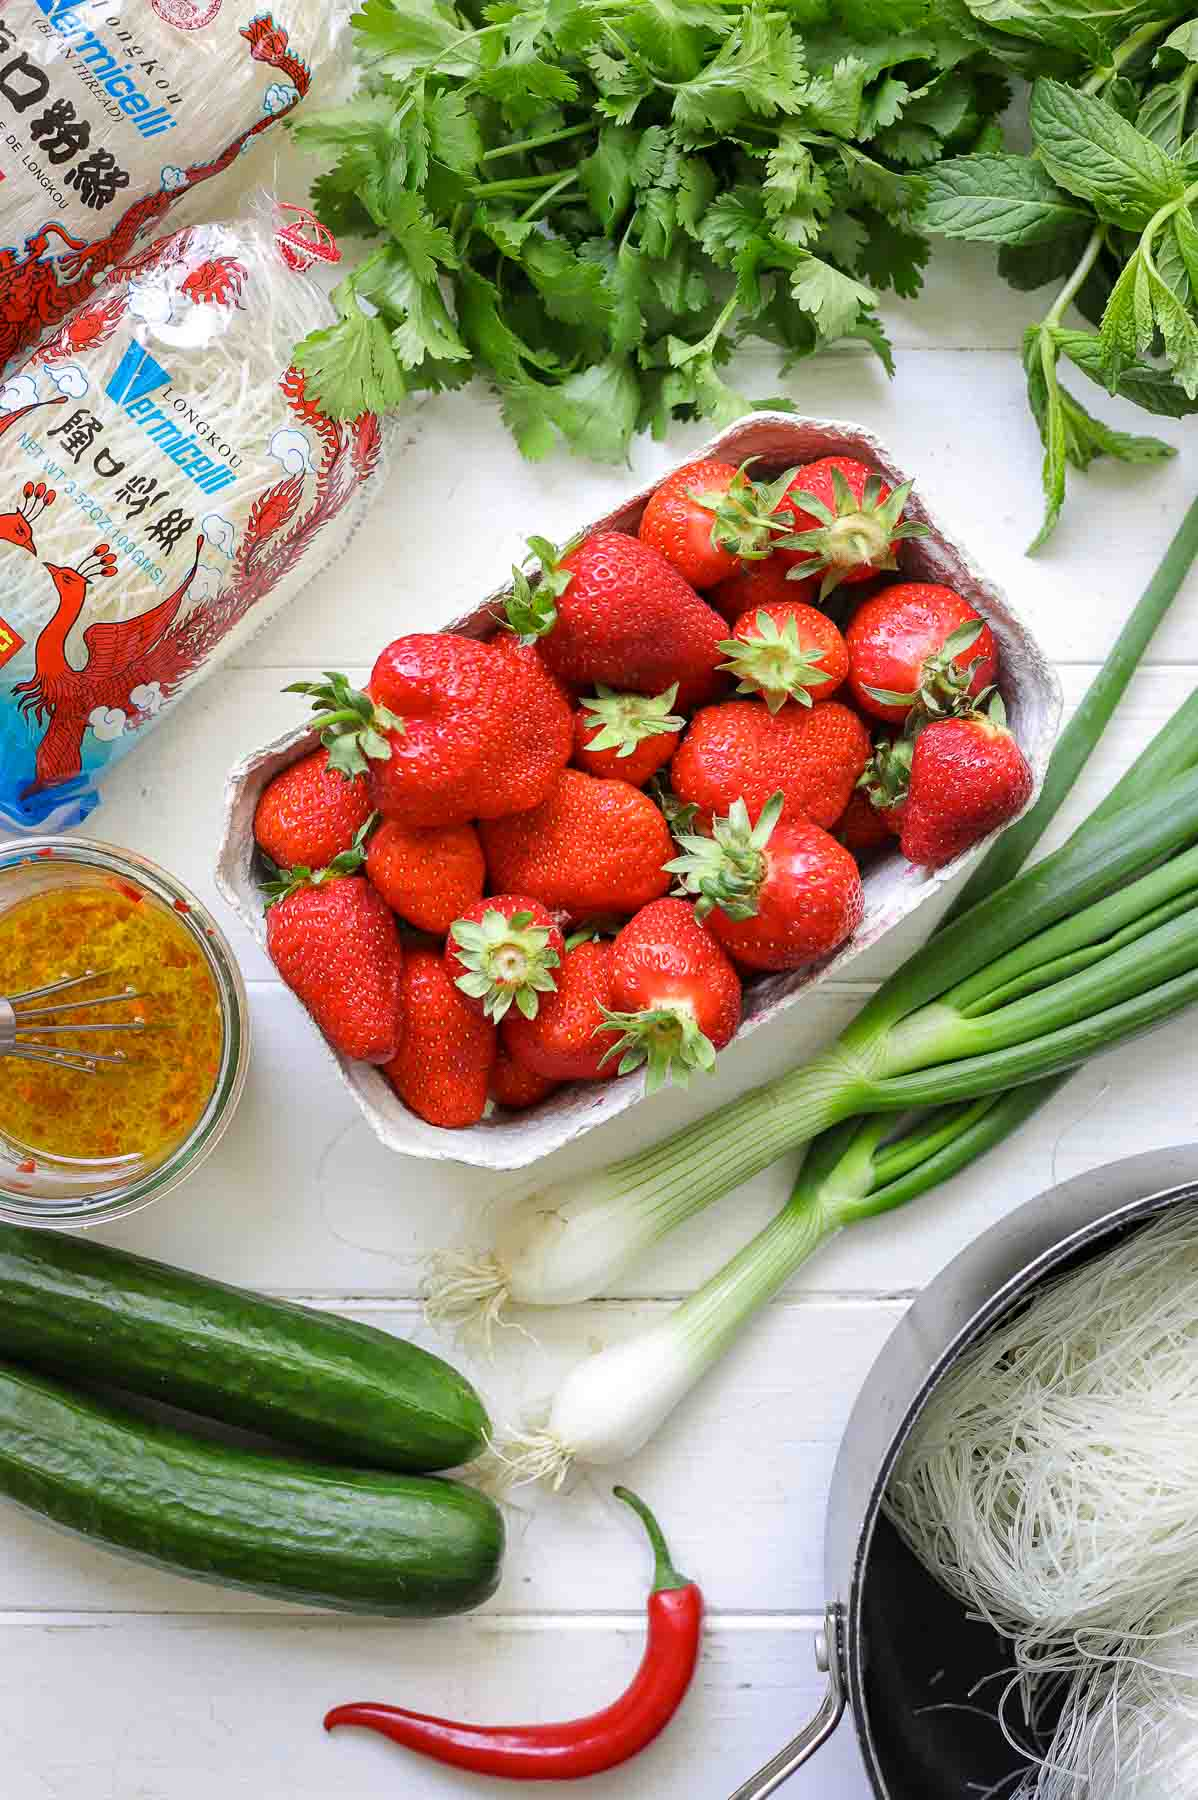 Ingredients for Glass Noodle Salad with Strawberries & Cucumber